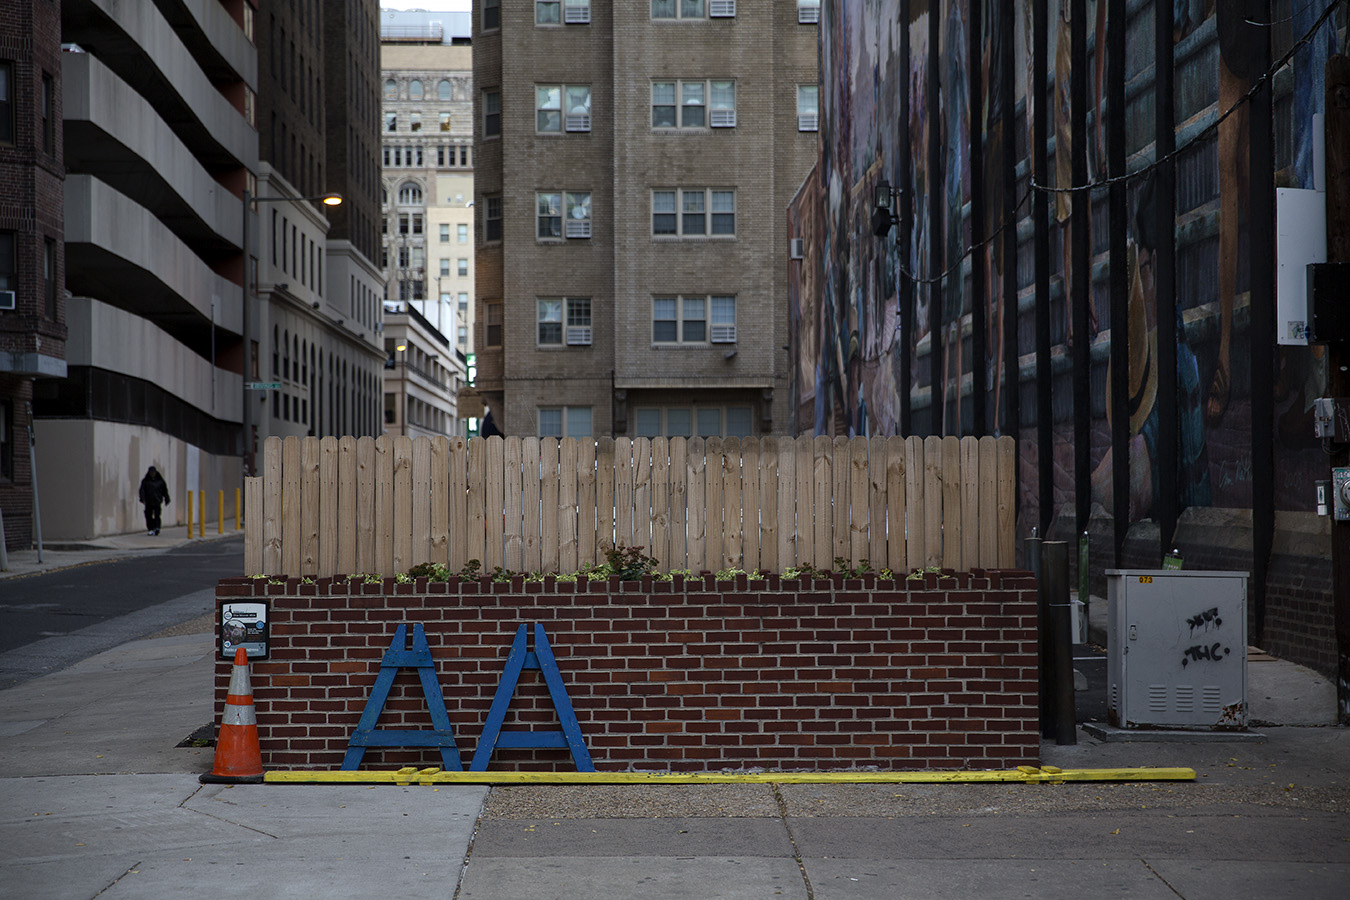 8_Lone Wall_Casey Egner_Street Photography_Ornament_Brick Wall_Figure_Barrier copy